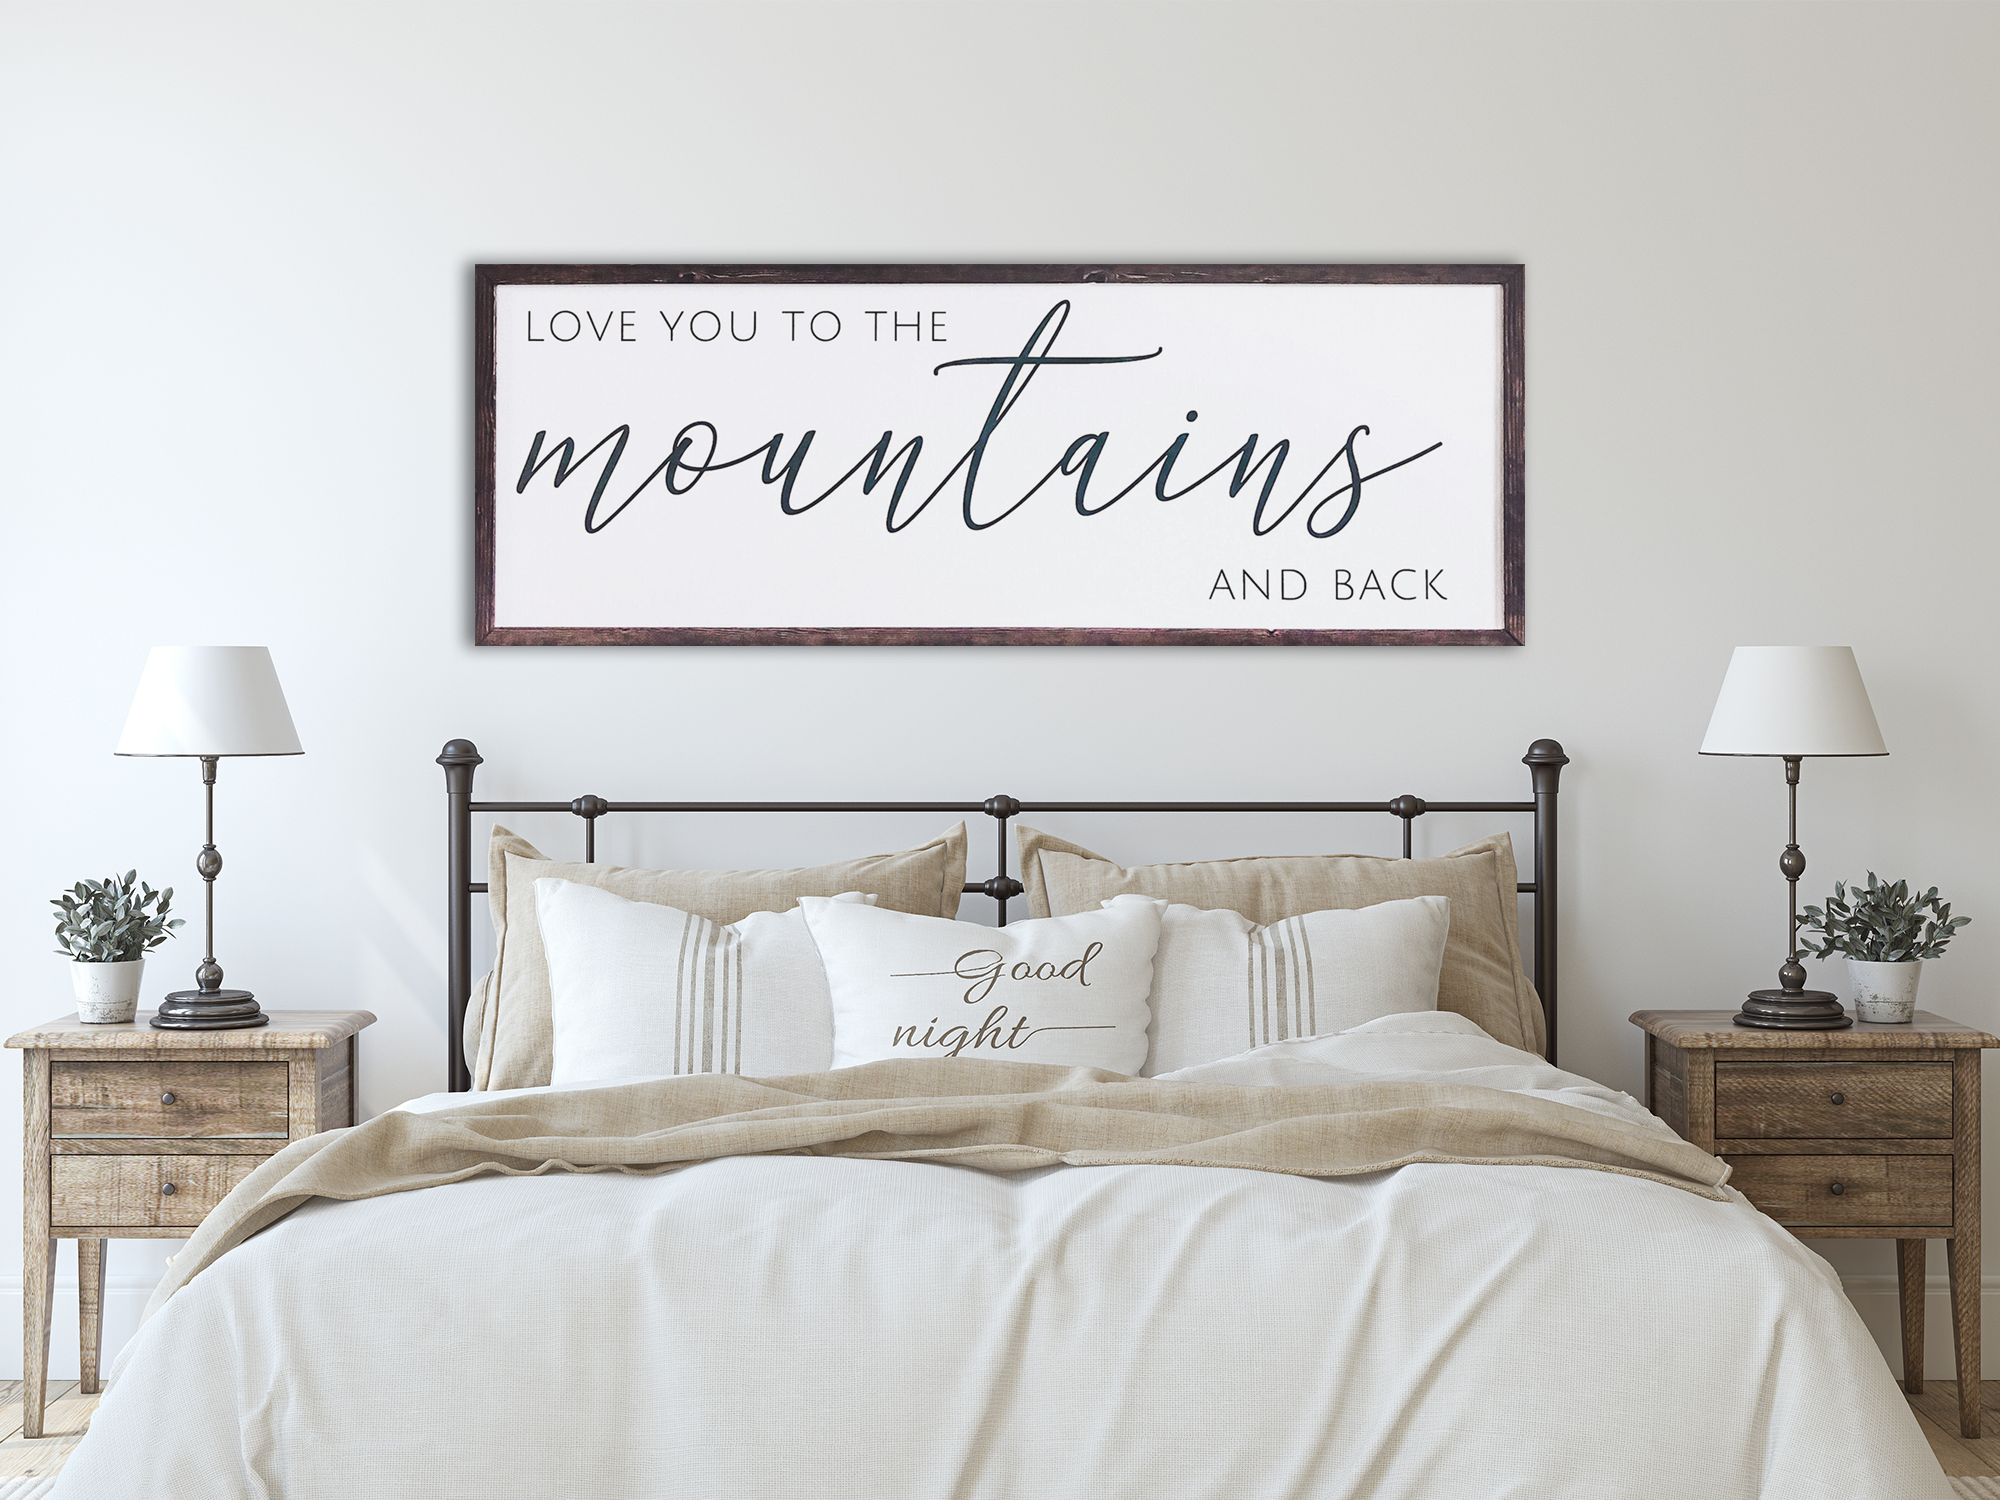 Love You to the Mountains Home Decor Sig